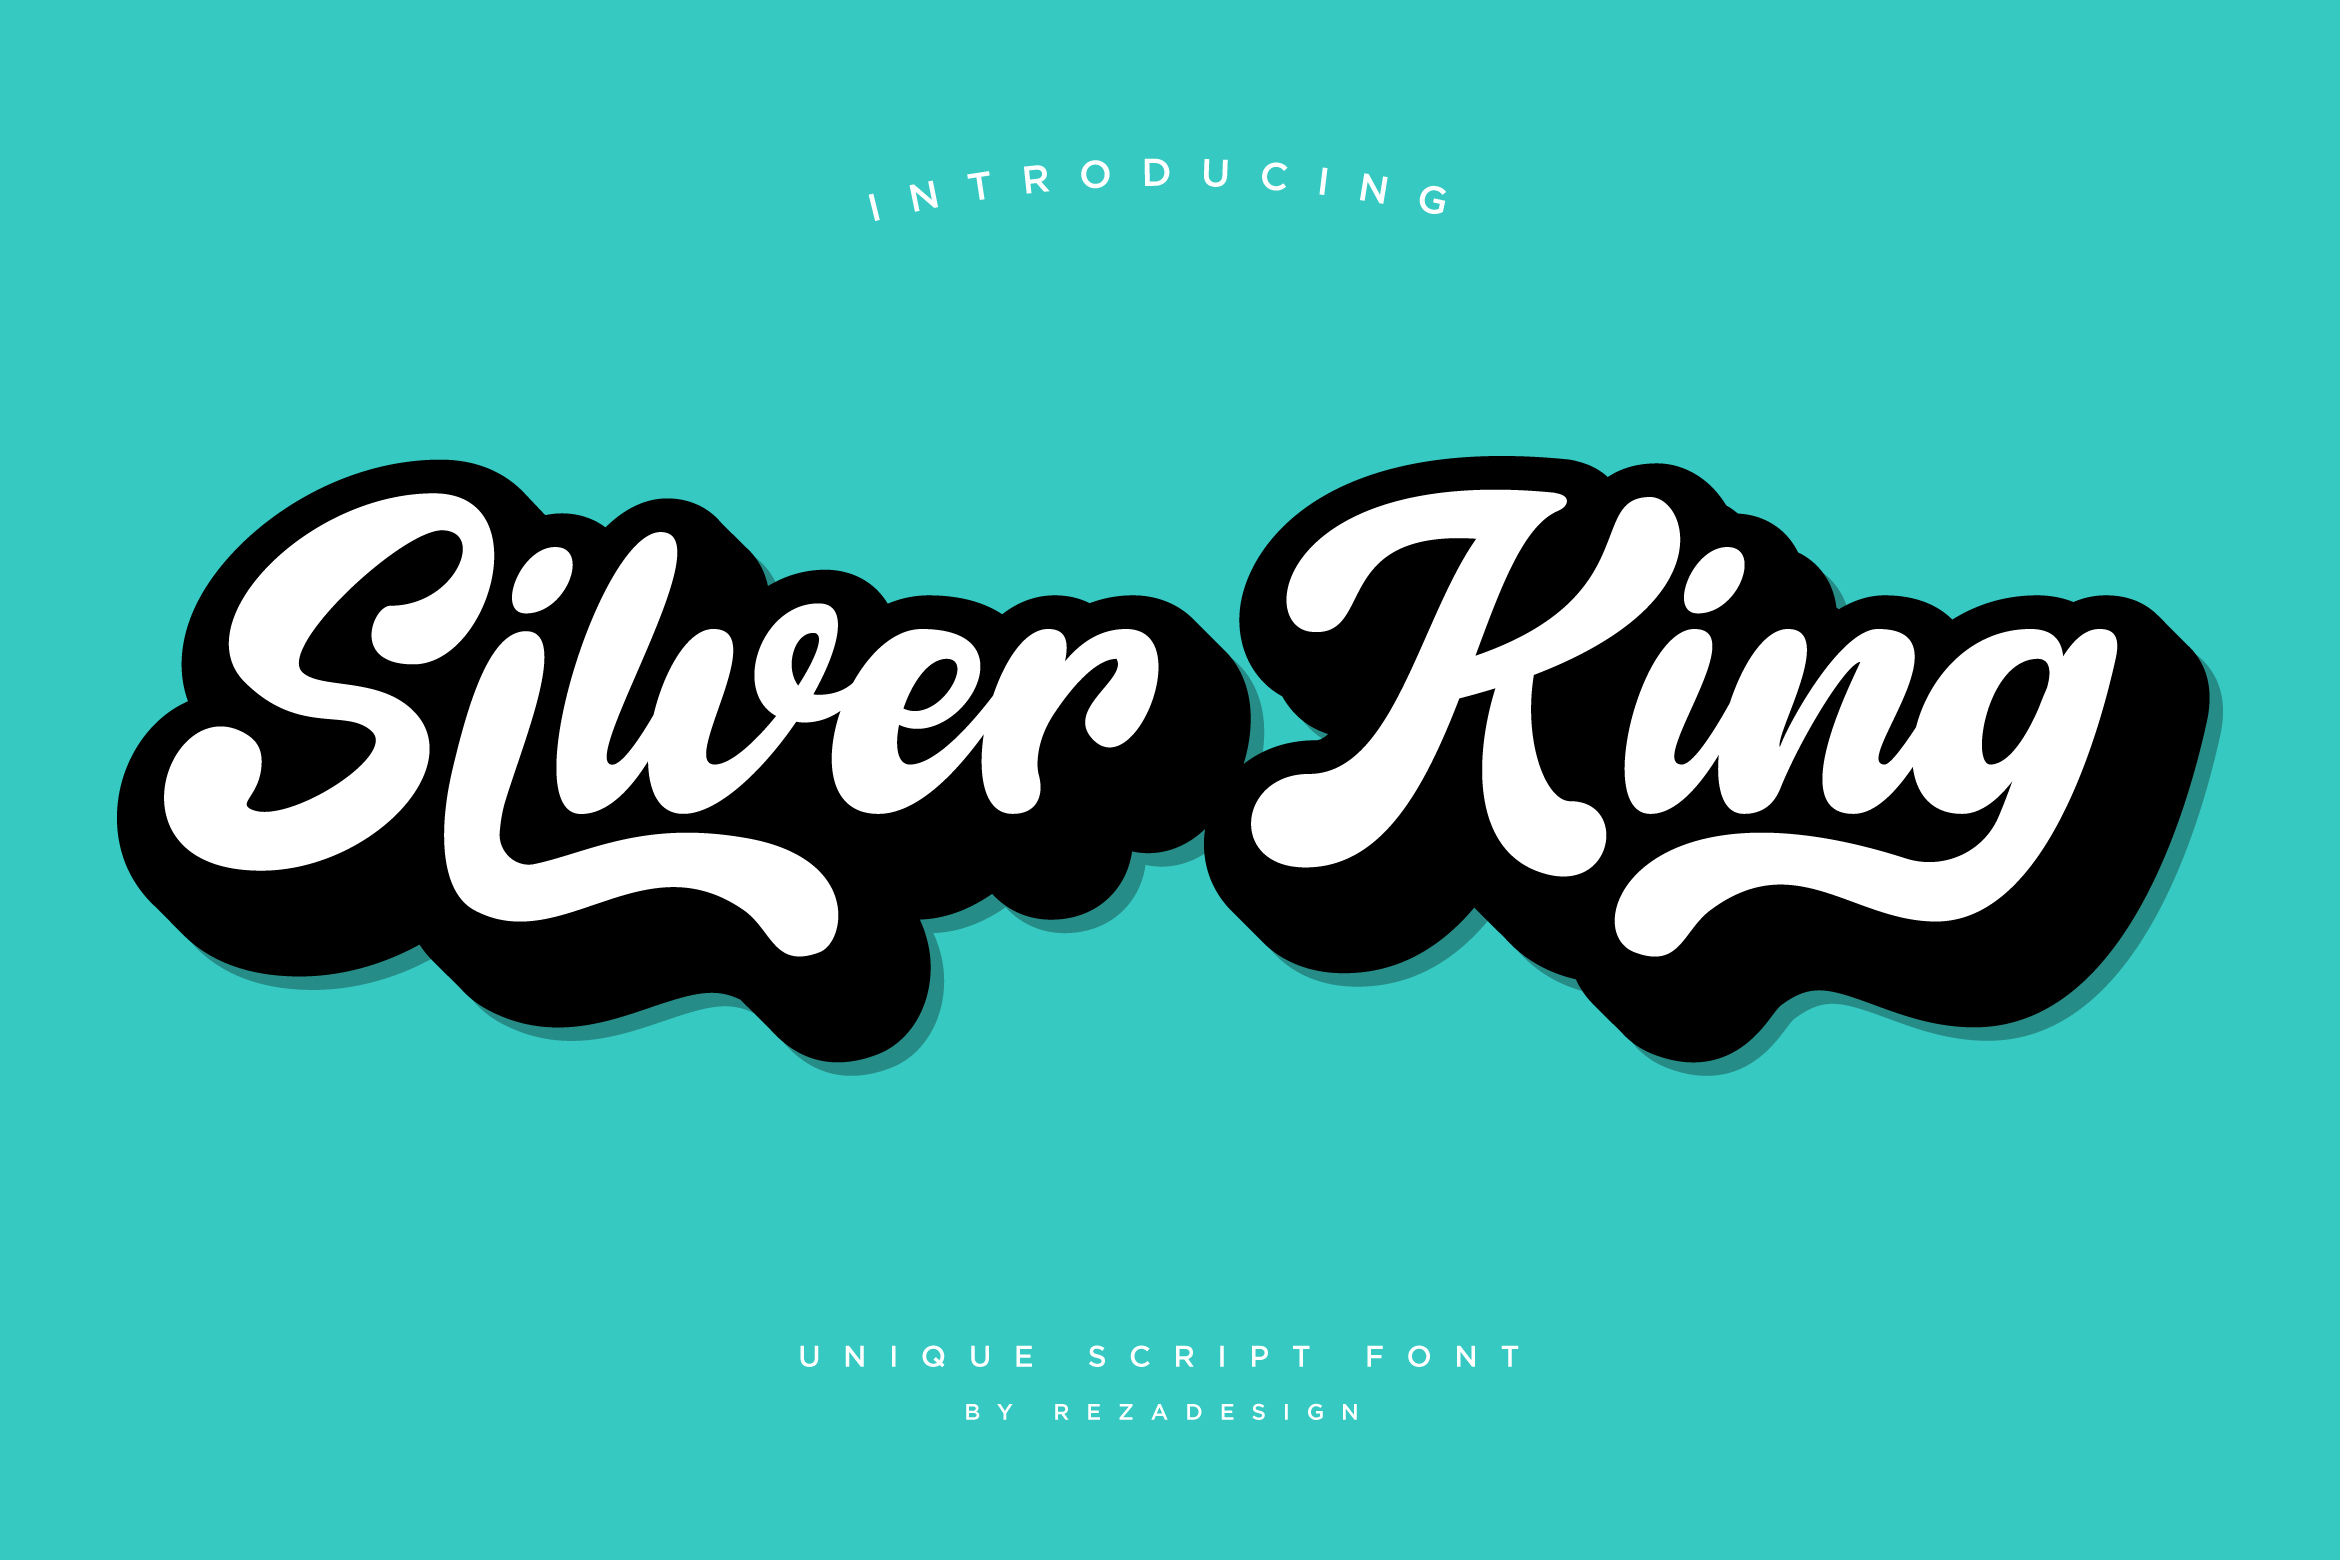 Silver King - Script Font example image 2